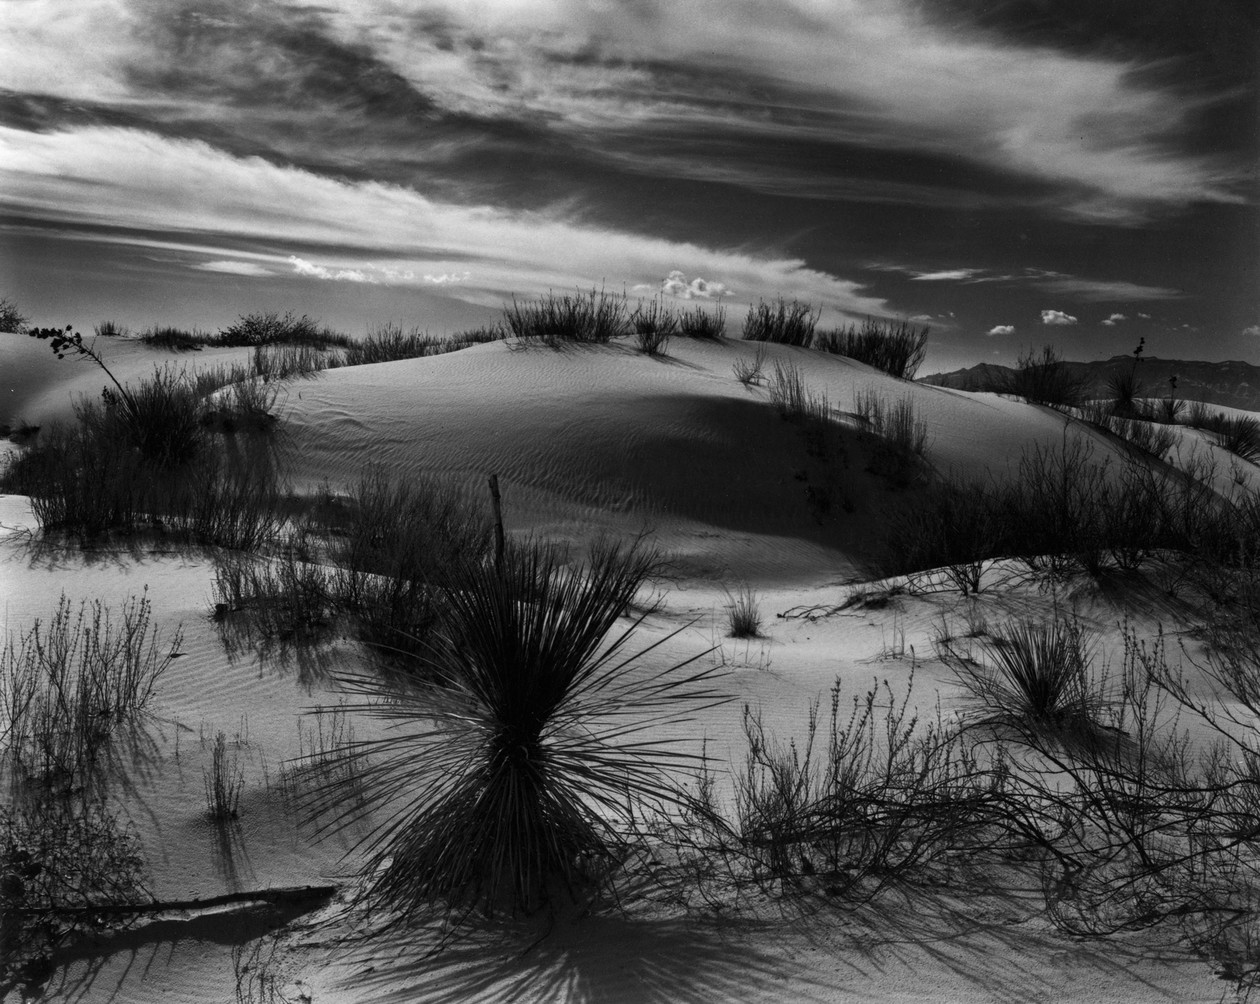 Sand Dunes, White Sands, NM  (1946) by Brett Weston